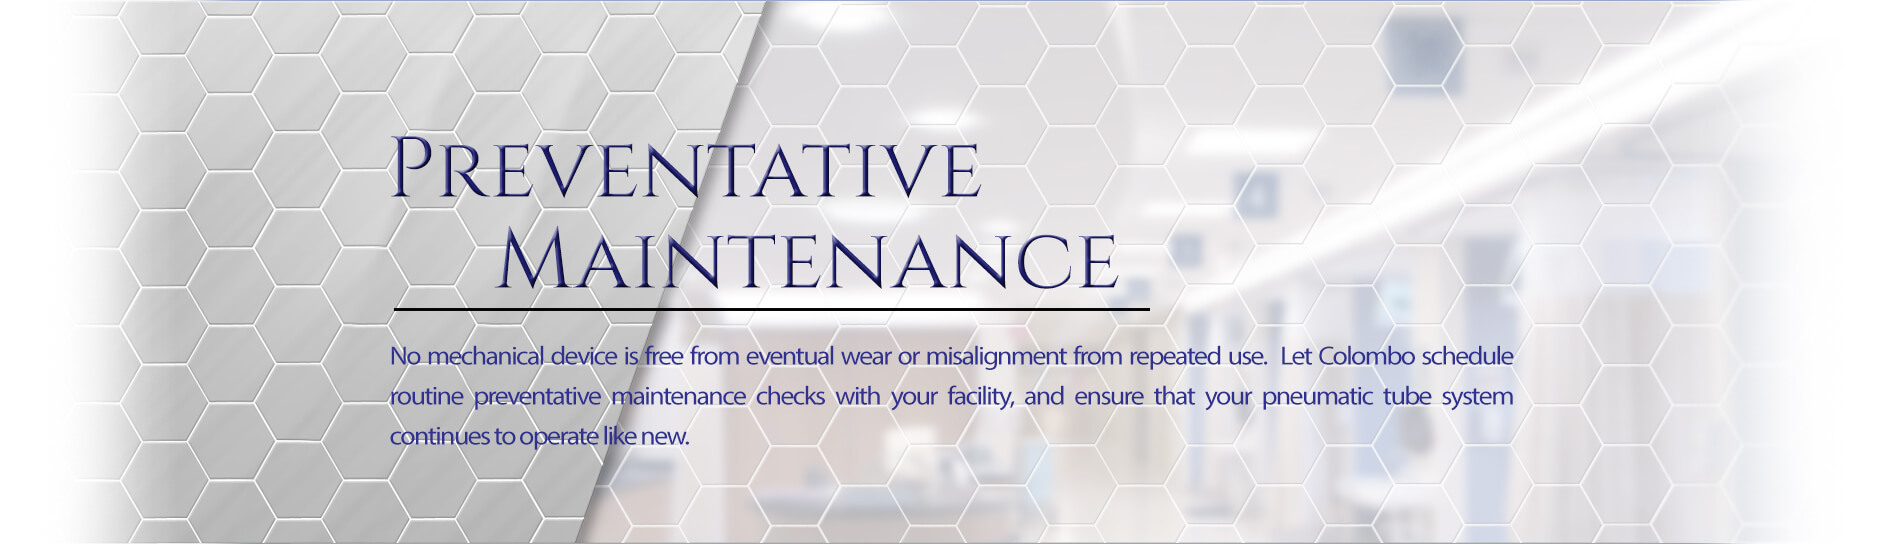 Preventative Maintenance - No mechanical device is free from eventual wear or misalignment from repeated use. Let Colombo schedule a routine preventative maintenance check with your facility, and ensure that your pneumatic tube system continues to operate like new.